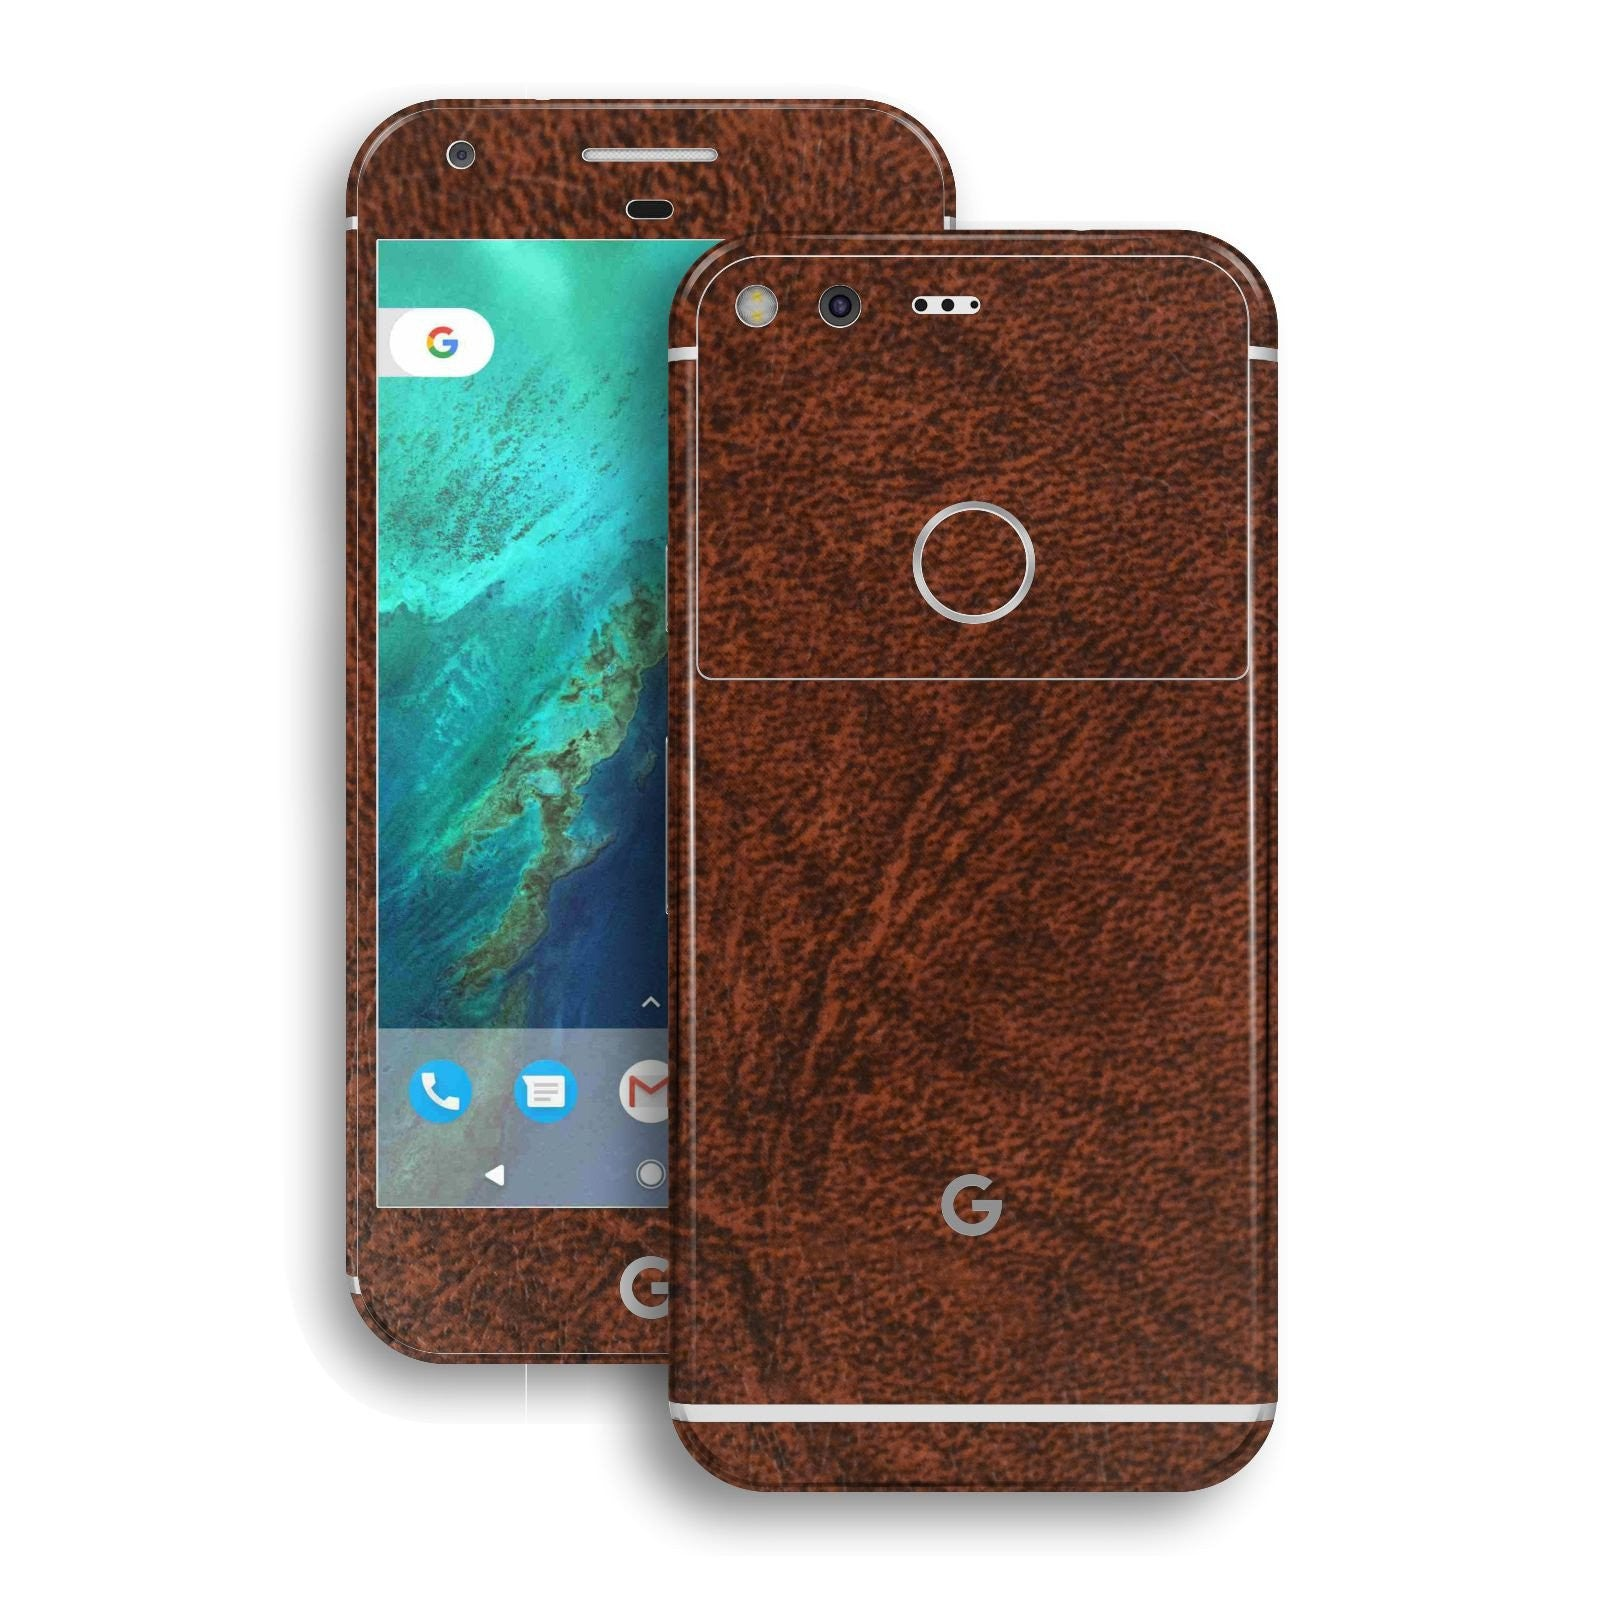 Google Pixel LUXURIA Brown Leather Skin by EasySkinz